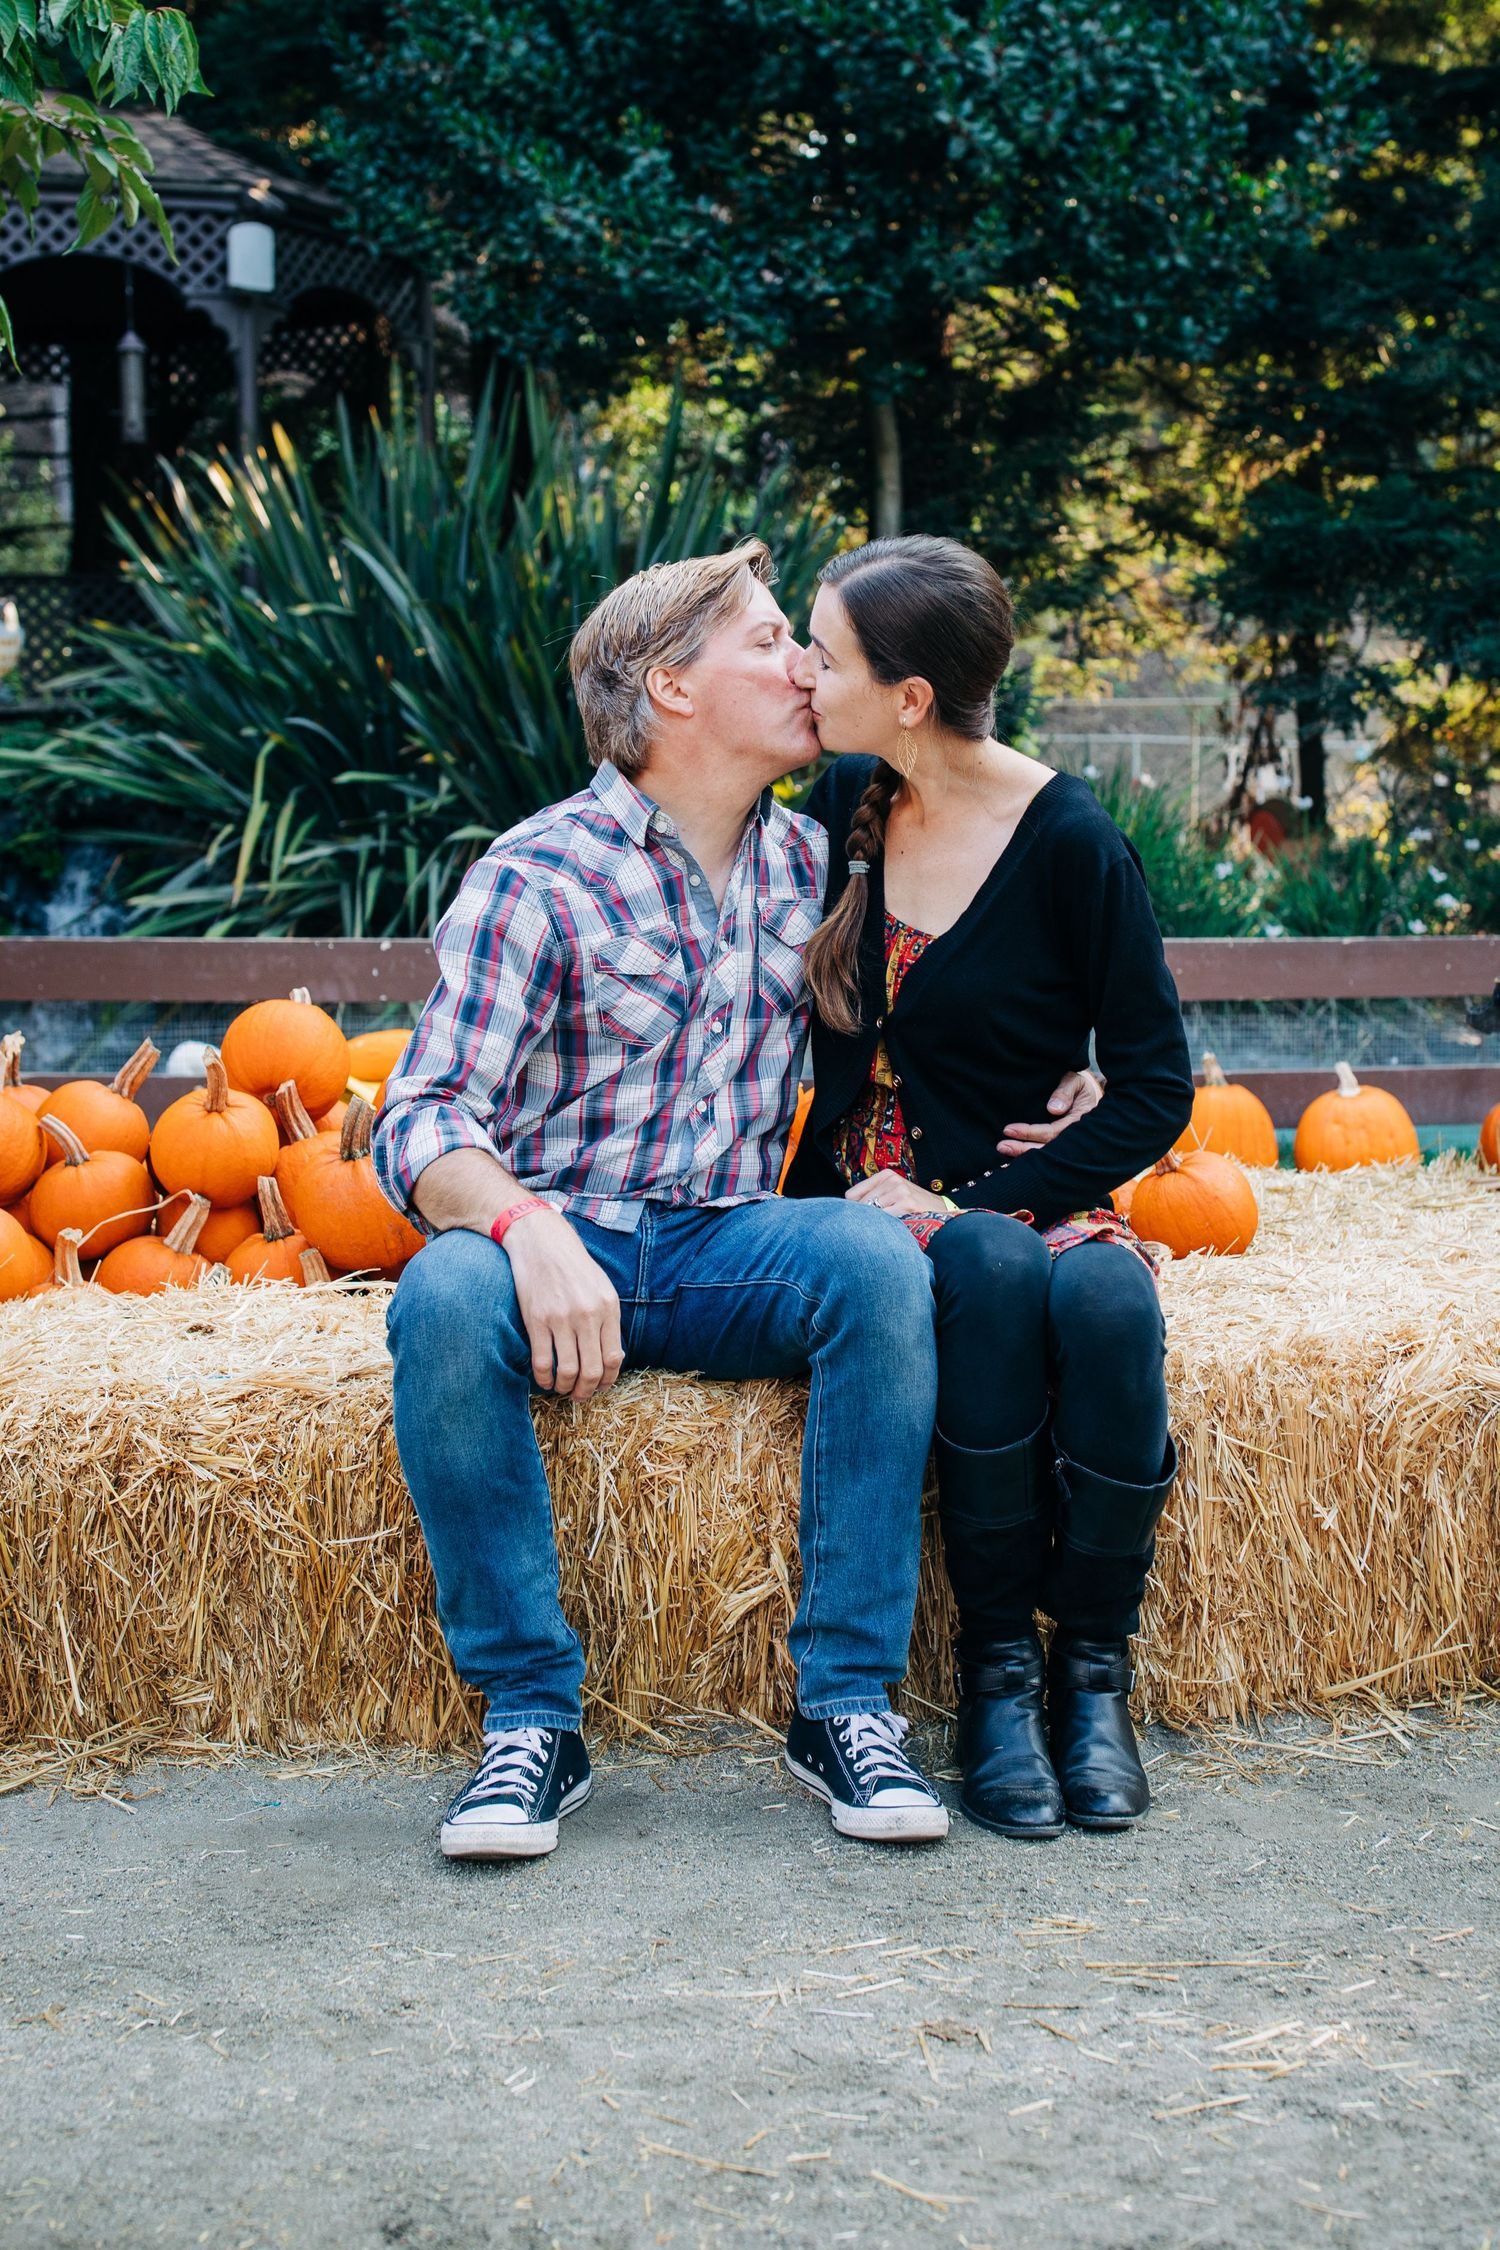 A camera-shy couple kisses at a pumpkin patch in northern California.